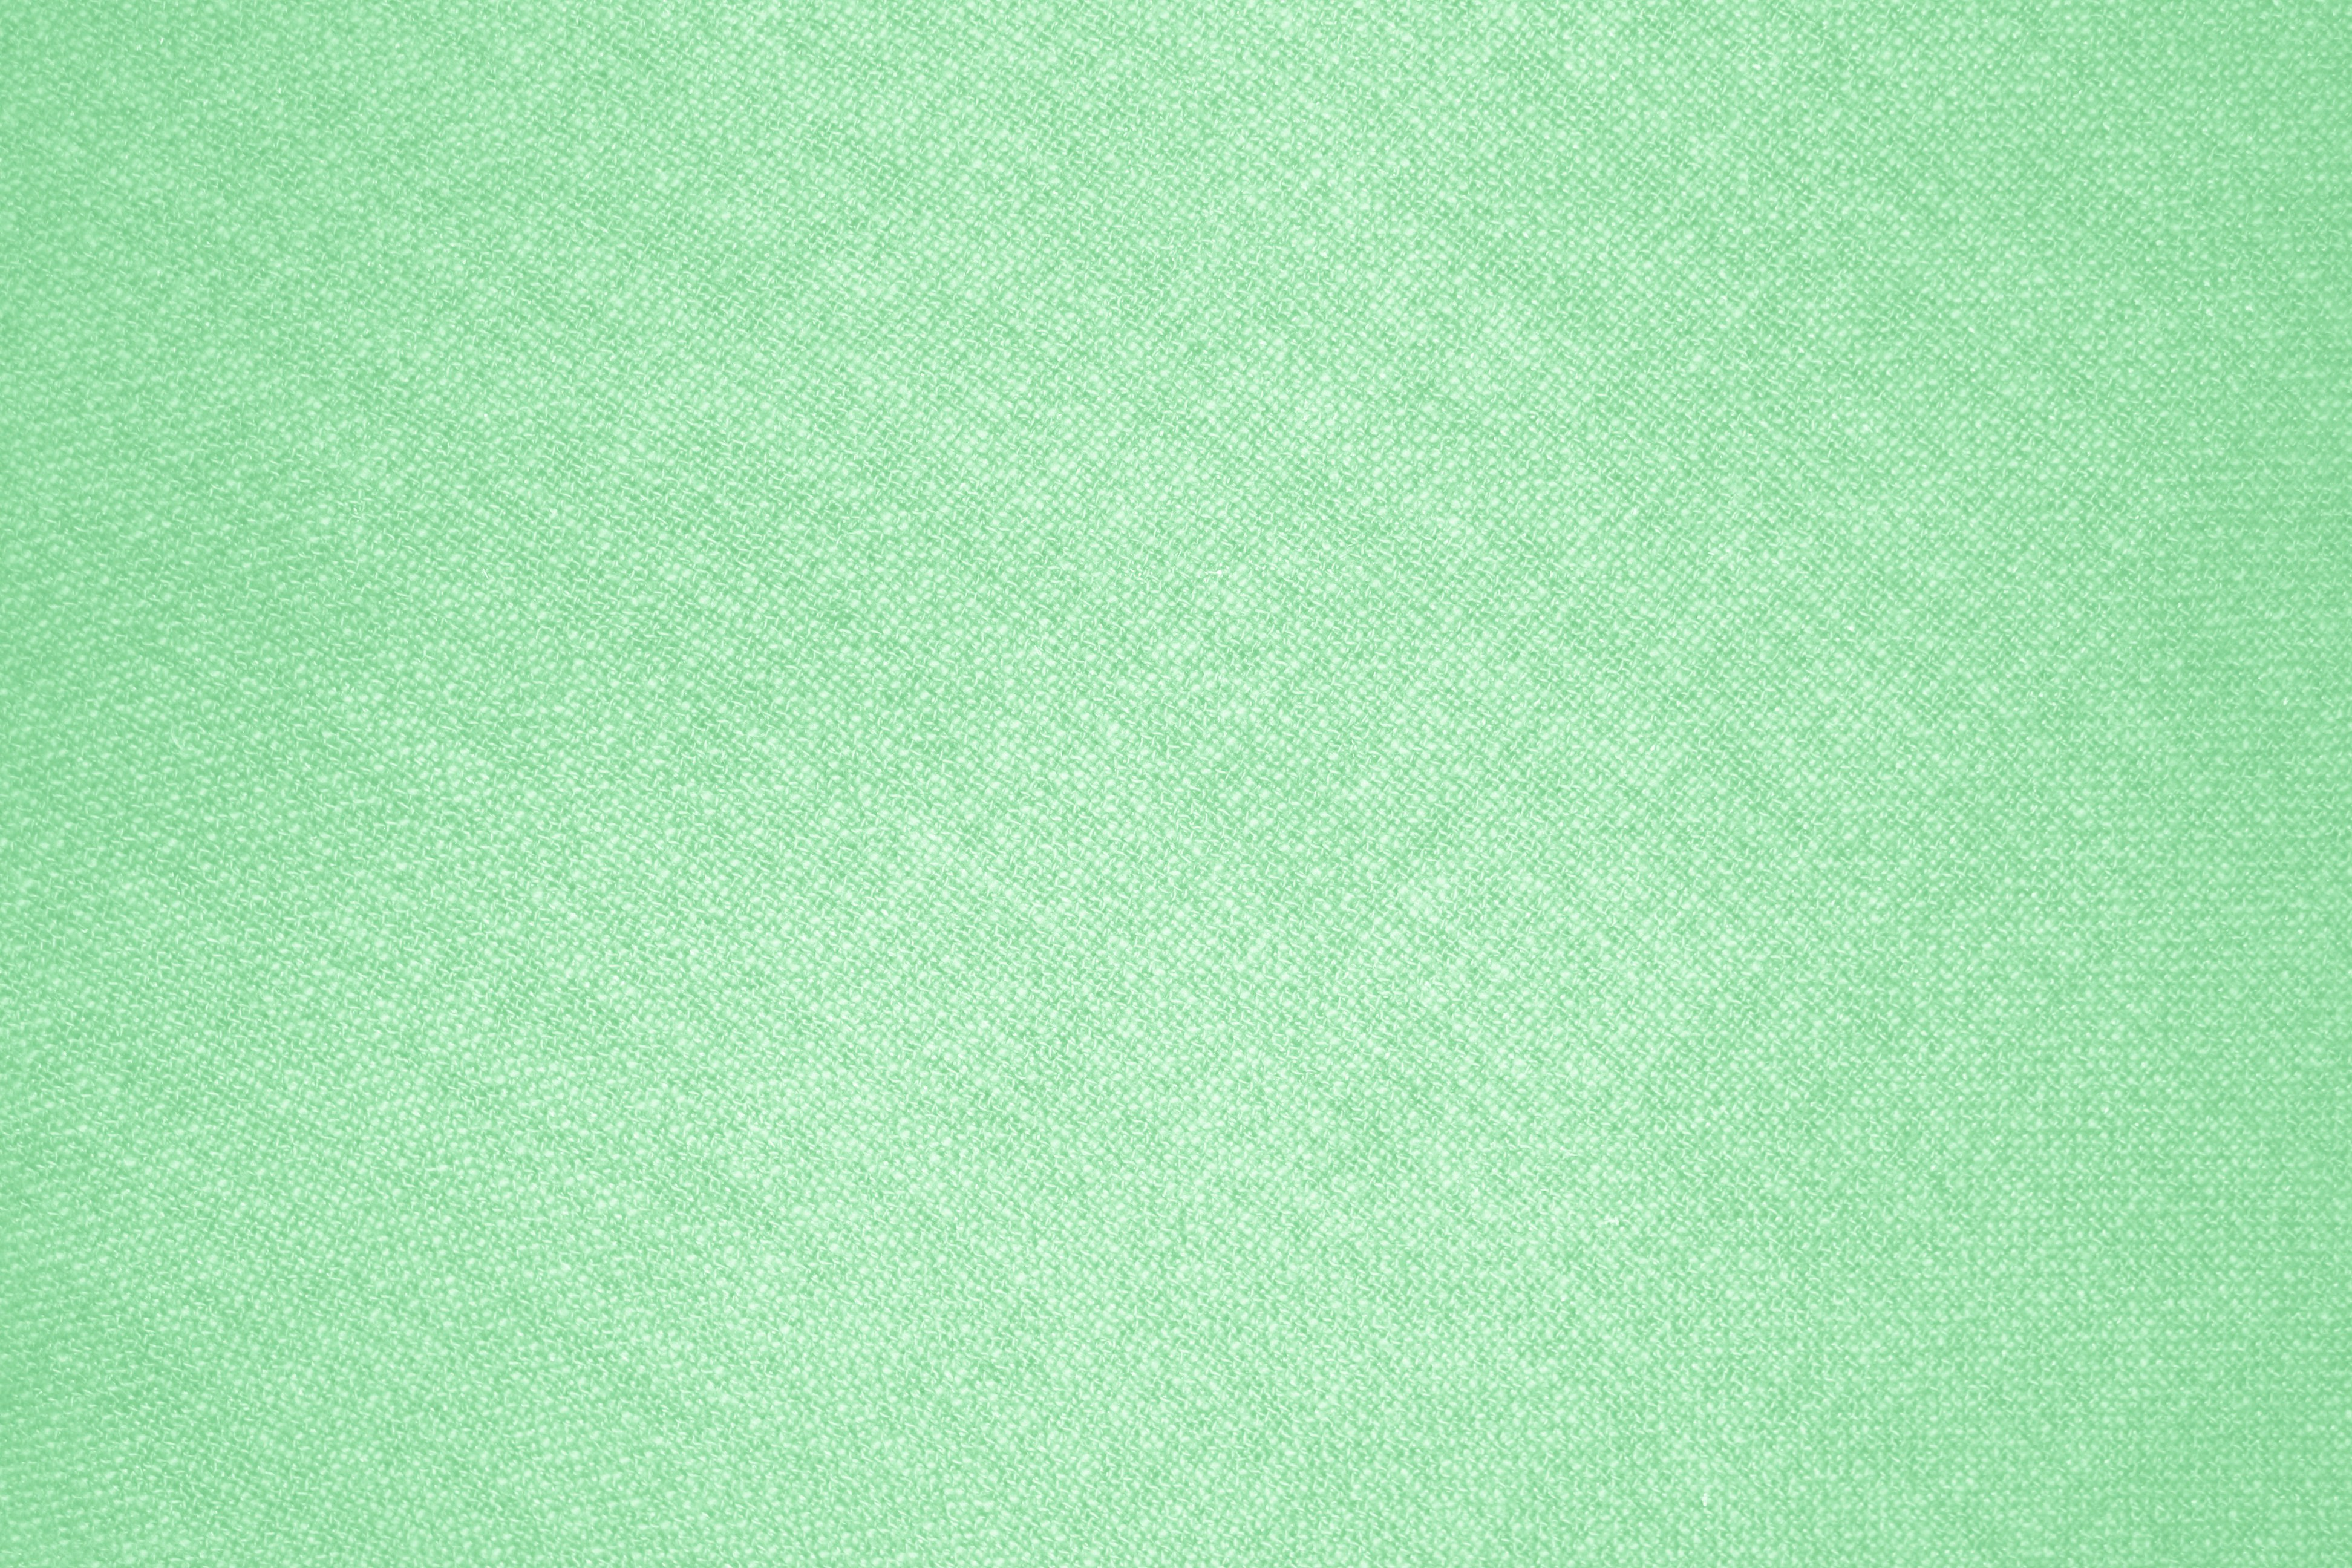 Light green background wallpaper wallpapersafari light green fabric texture picture free photograph photos public aloadofball Gallery